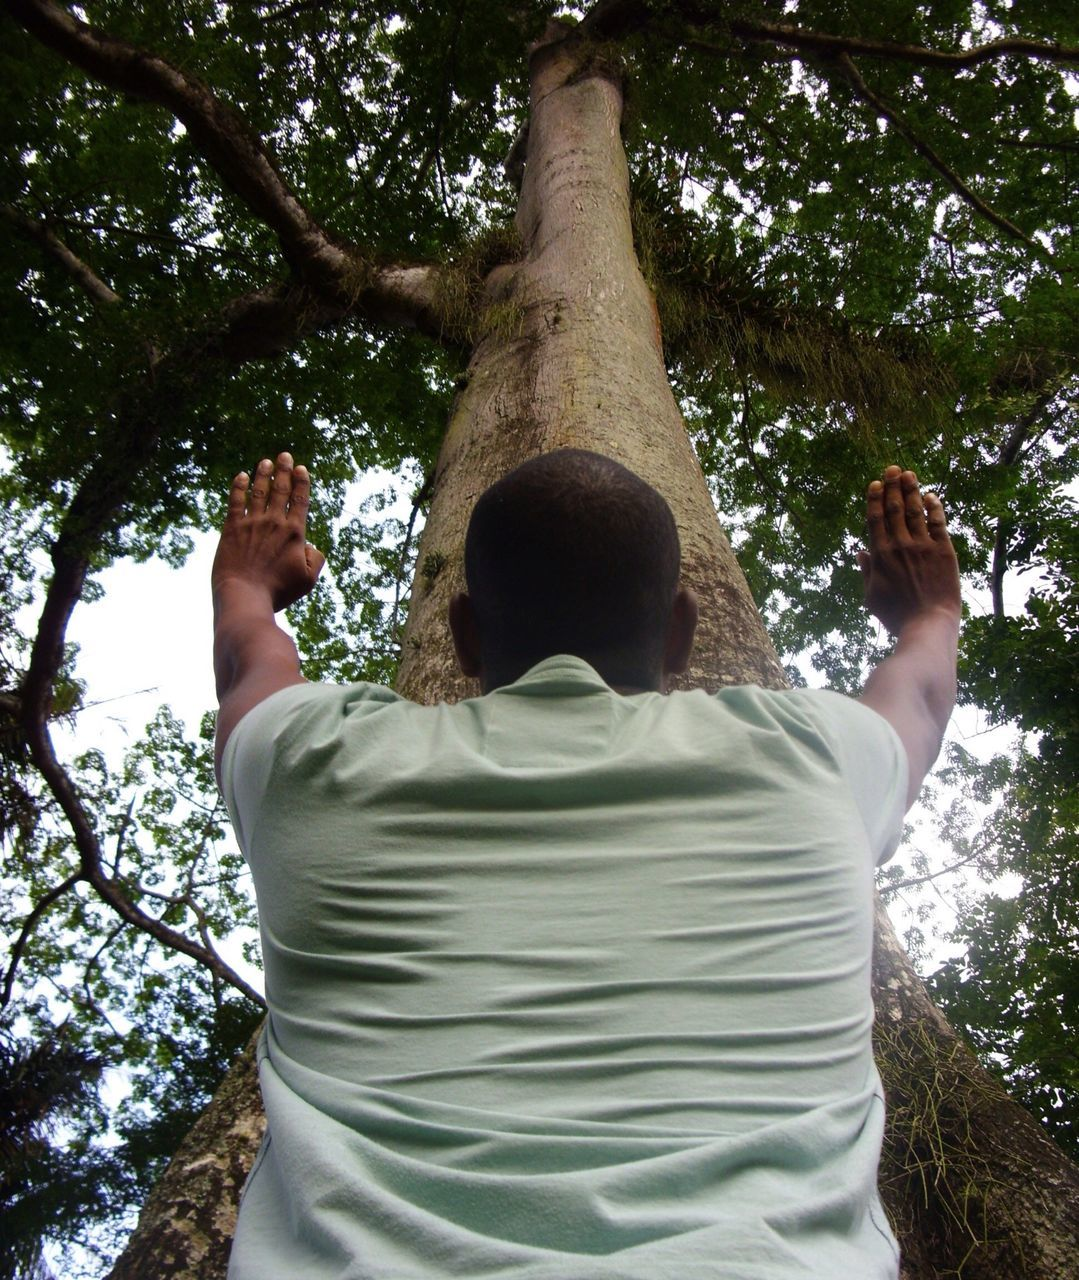 Low Angle View Of Man With Hands Raised Against Tree